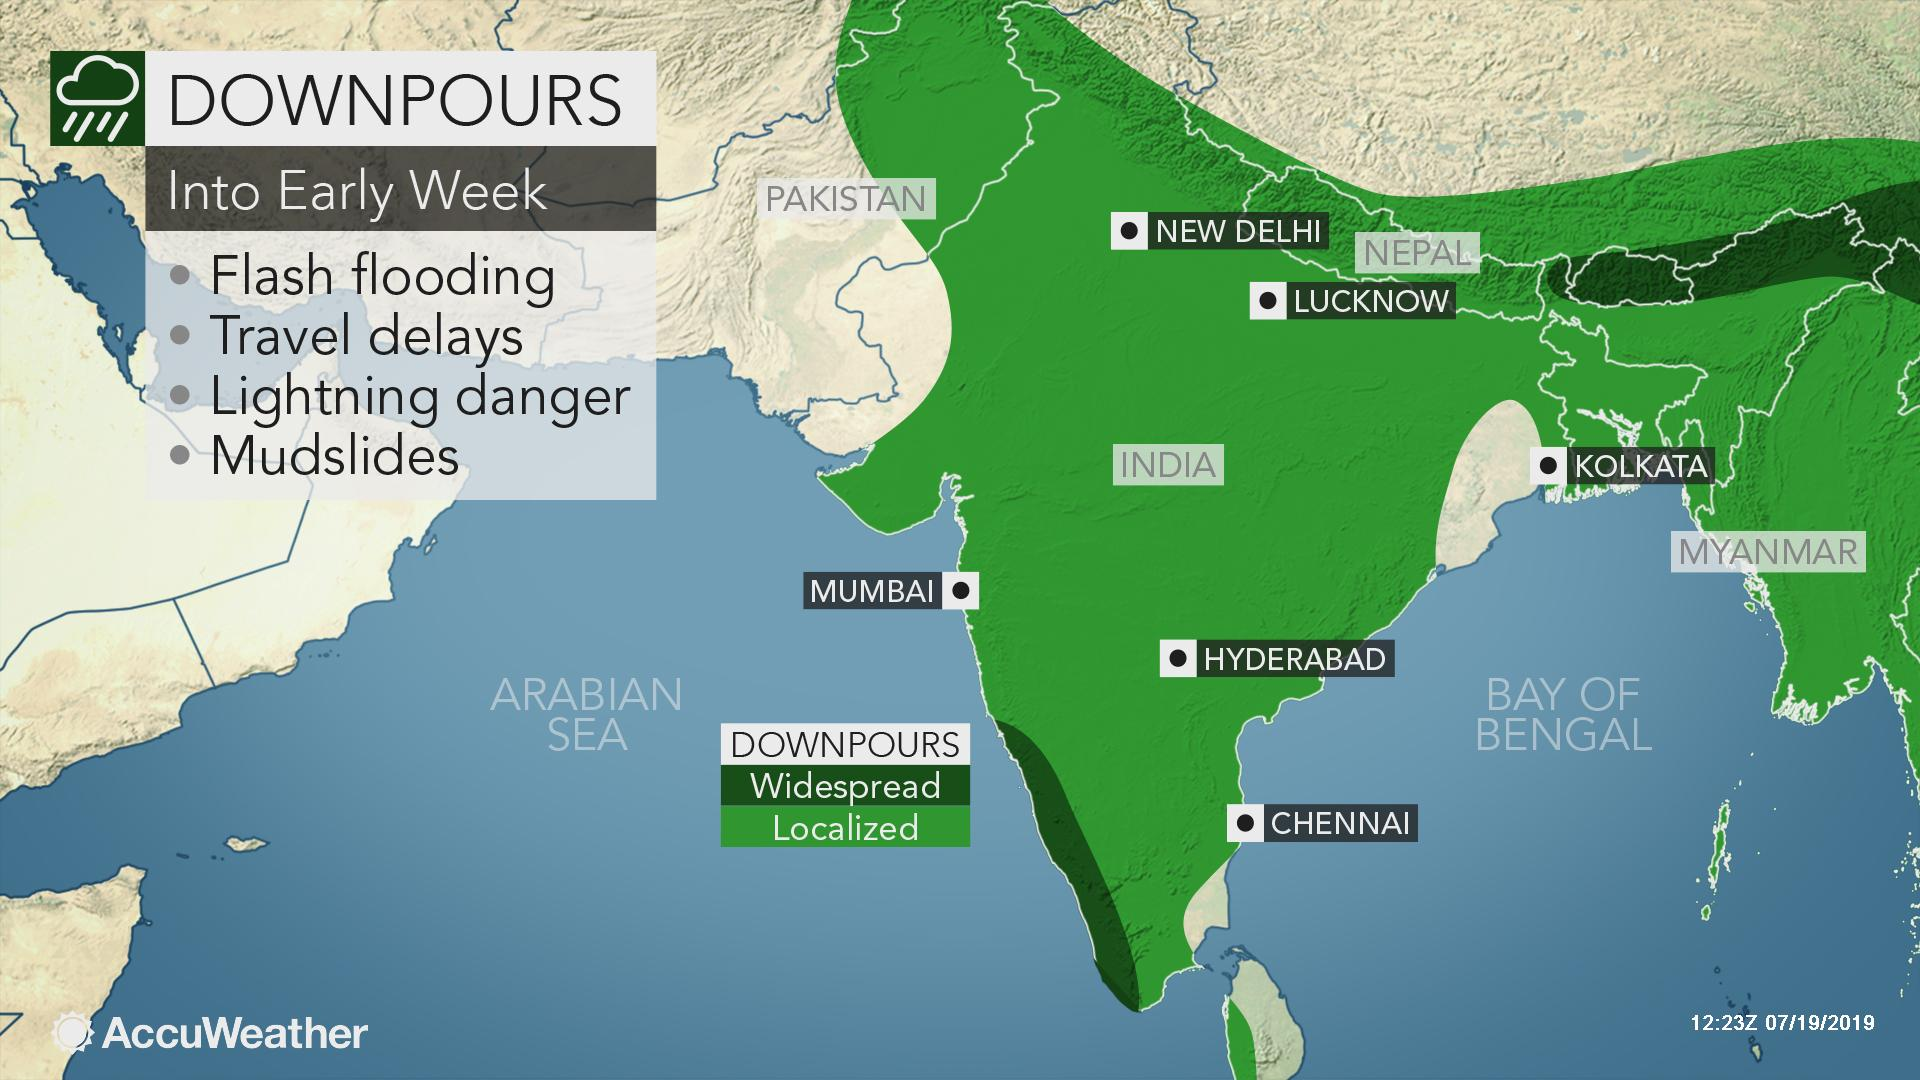 Chennai Weather - AccuWeather Forecast for TN